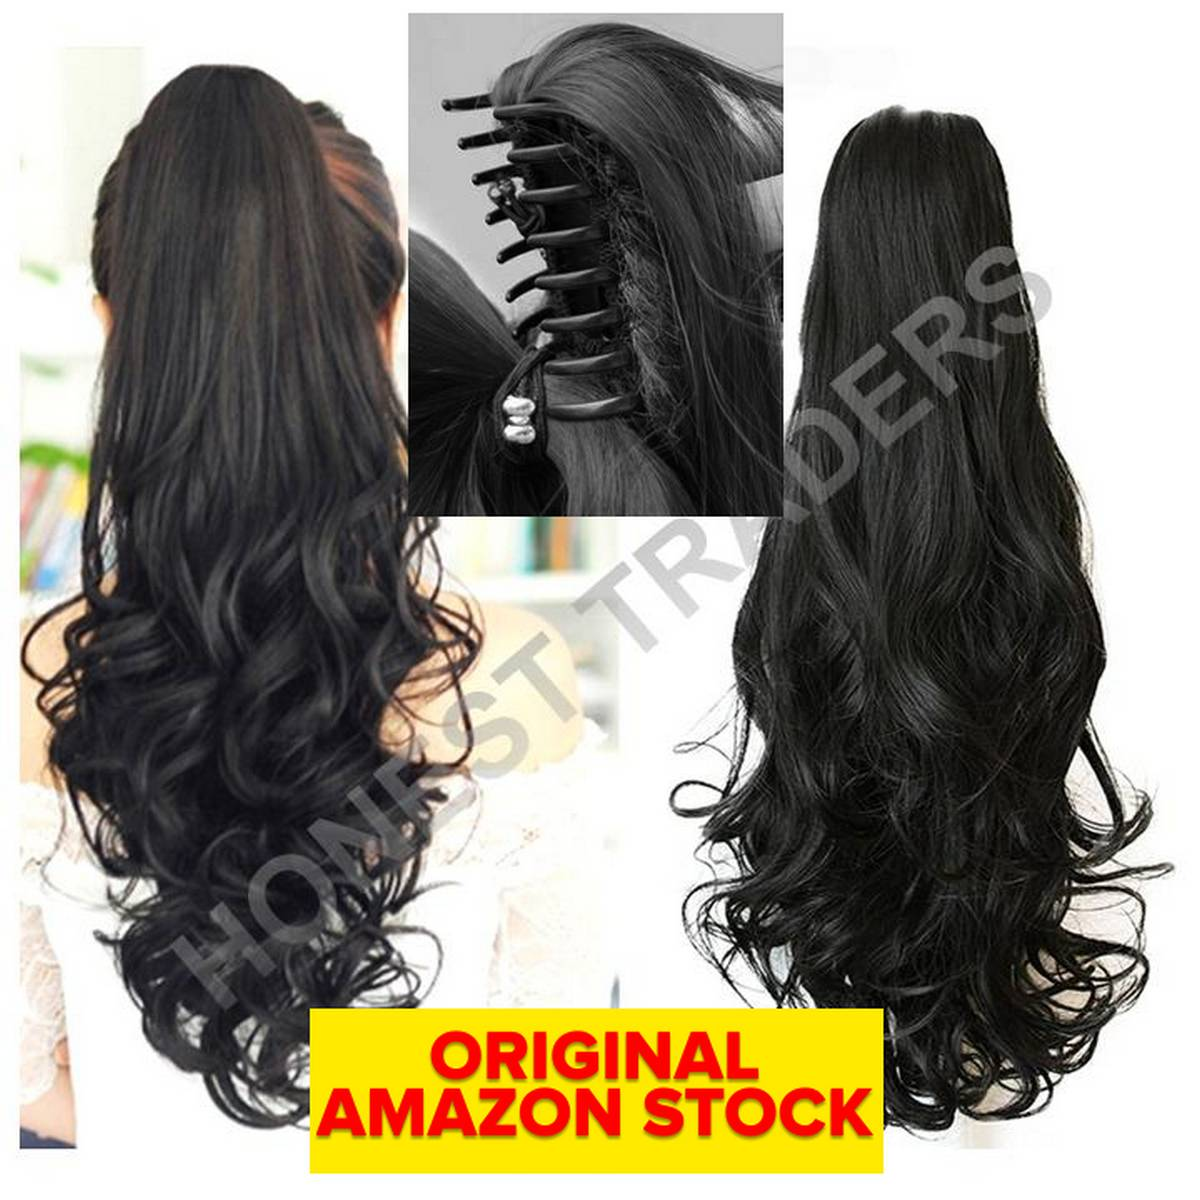 Long Curly Ponytail Hair Extensions With Claw Clip in 26 inches Natural Black Ponytail Hairpiece Weave Pony Tail Synthetic Hair